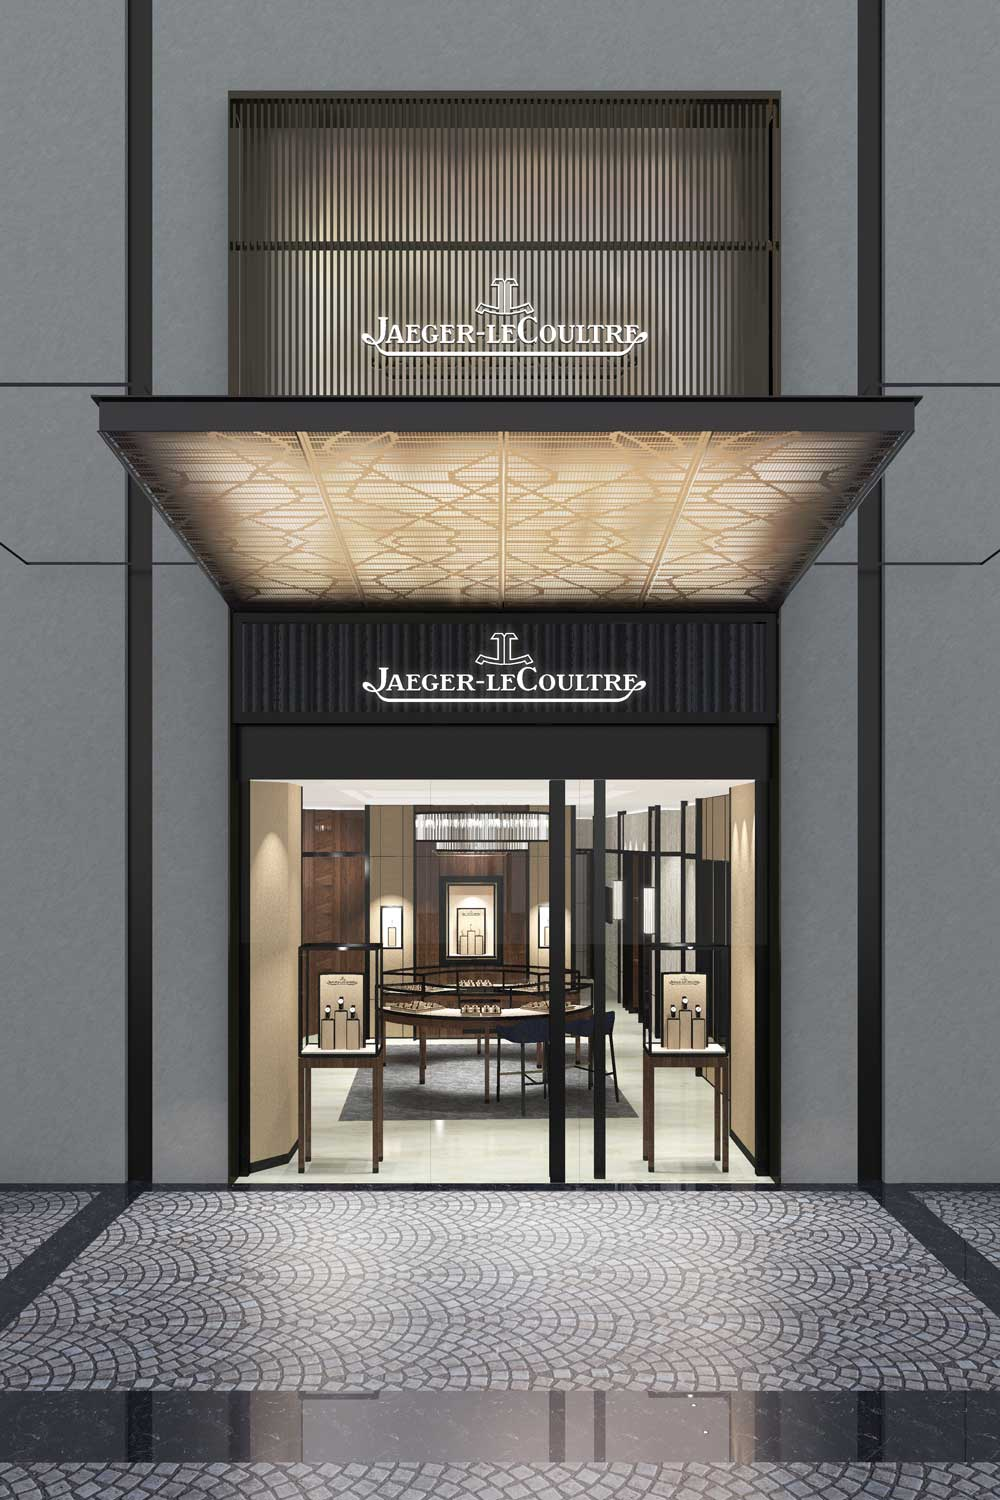 Jaeger-LeCoultre's first boutique in Australia is located on King Street, Sydney and set to open in a week's time